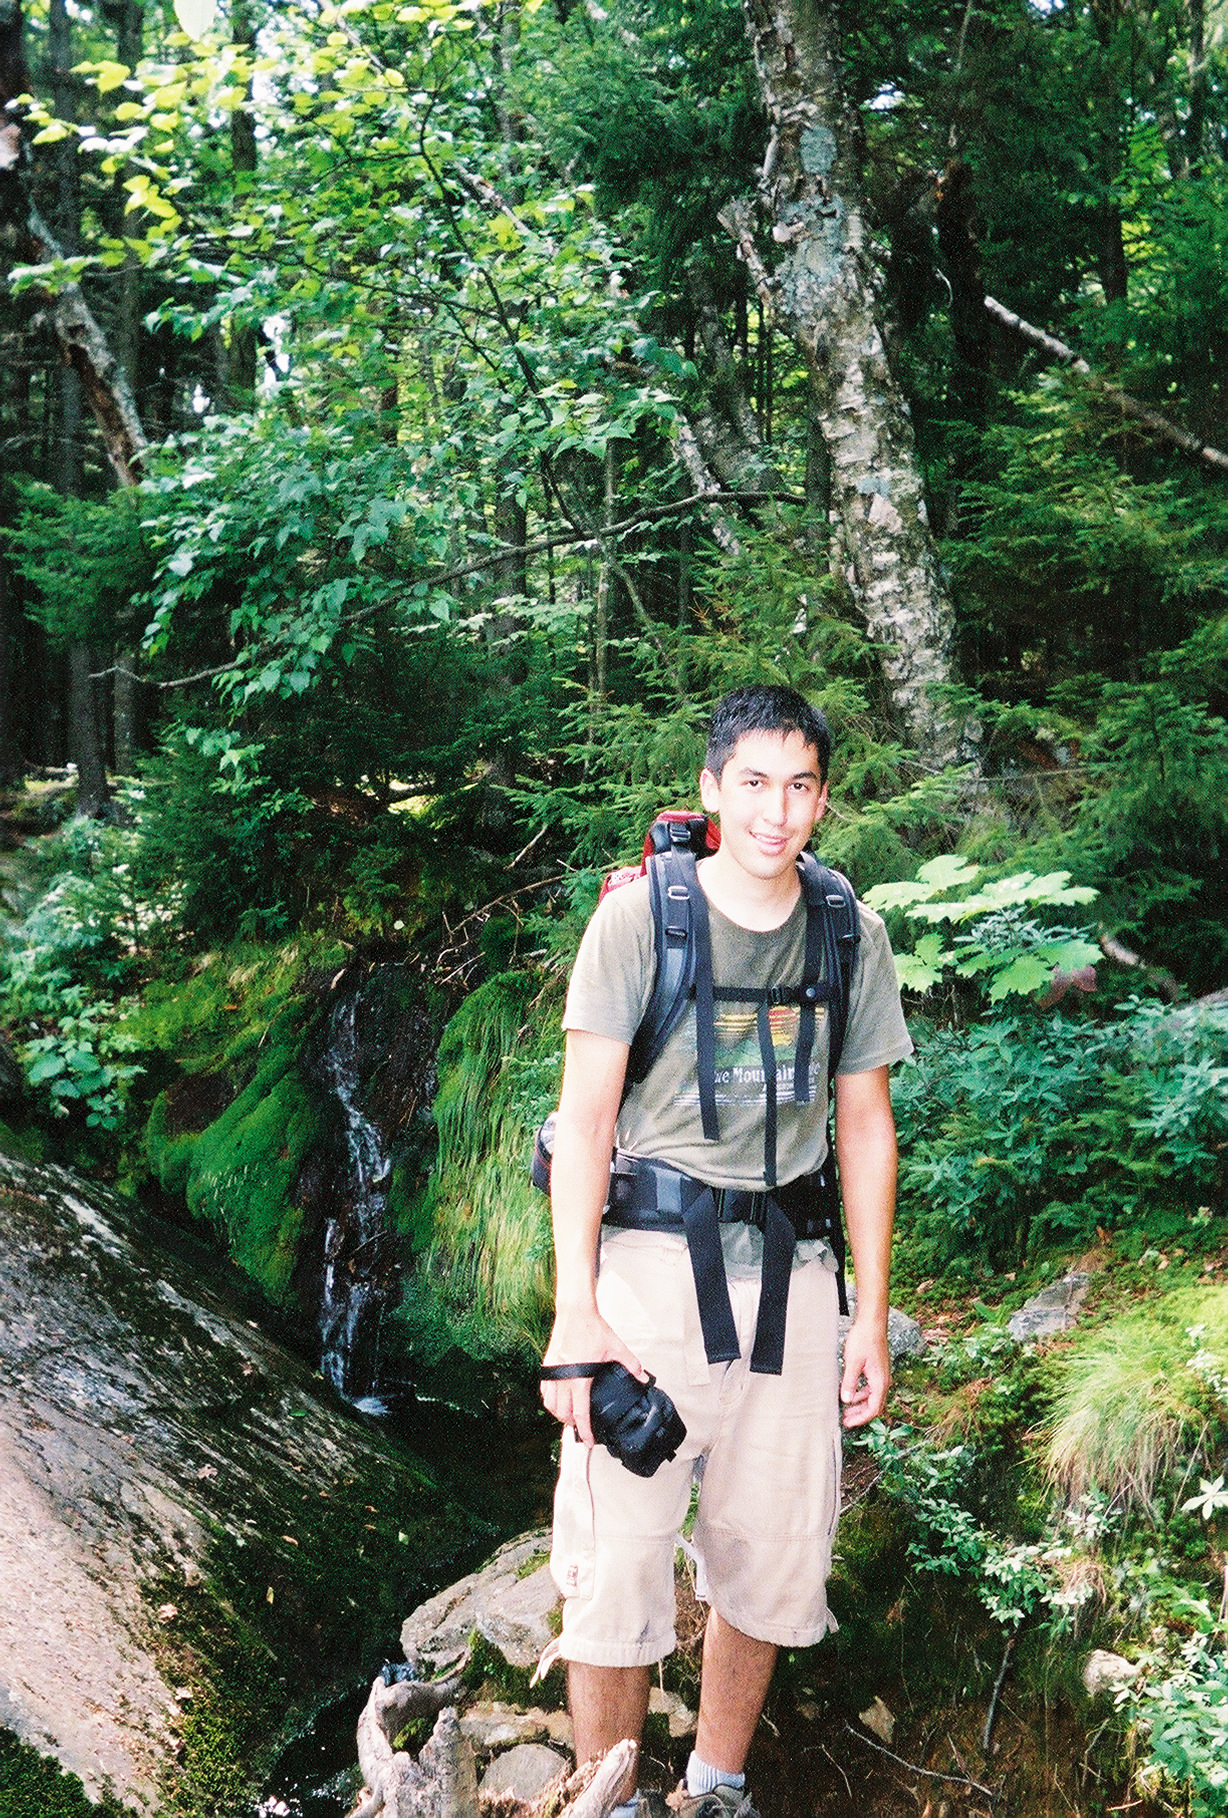 Hiking the White Mountains, New Hampshire, 2003